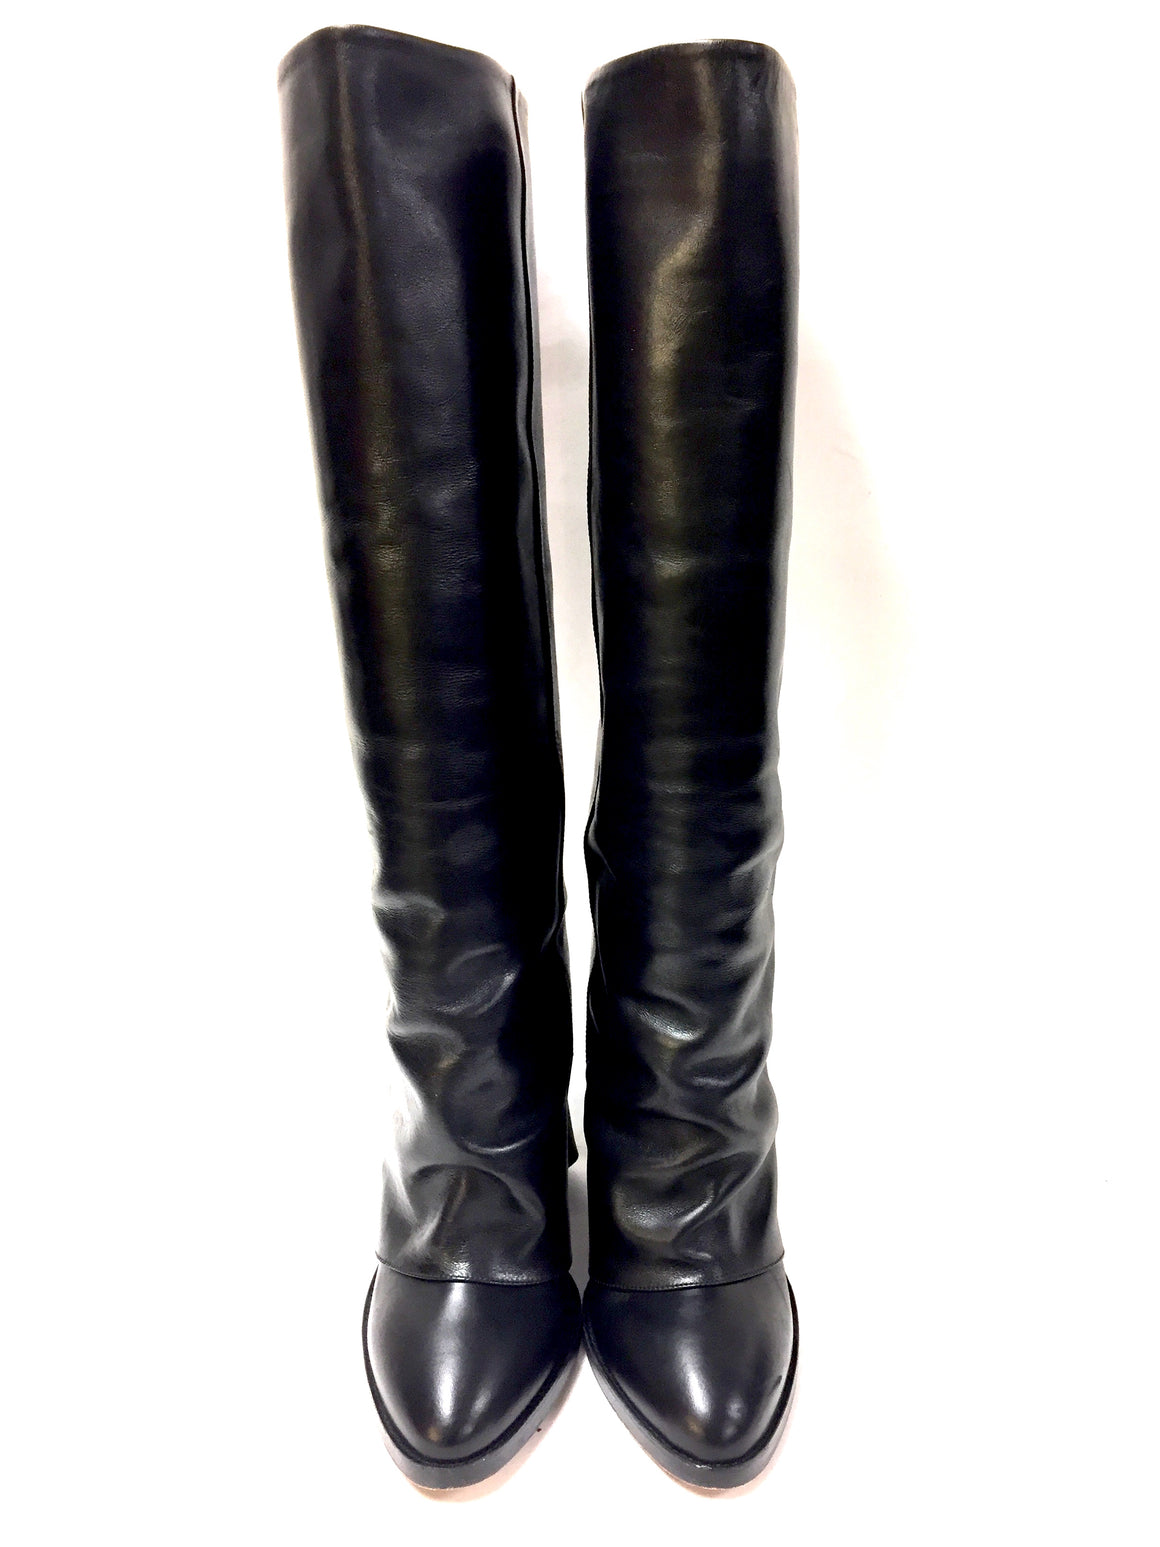 KALLISTE Black Leather Tall Heel Boots with Zip CuffS Size: 38.5 / 8.5